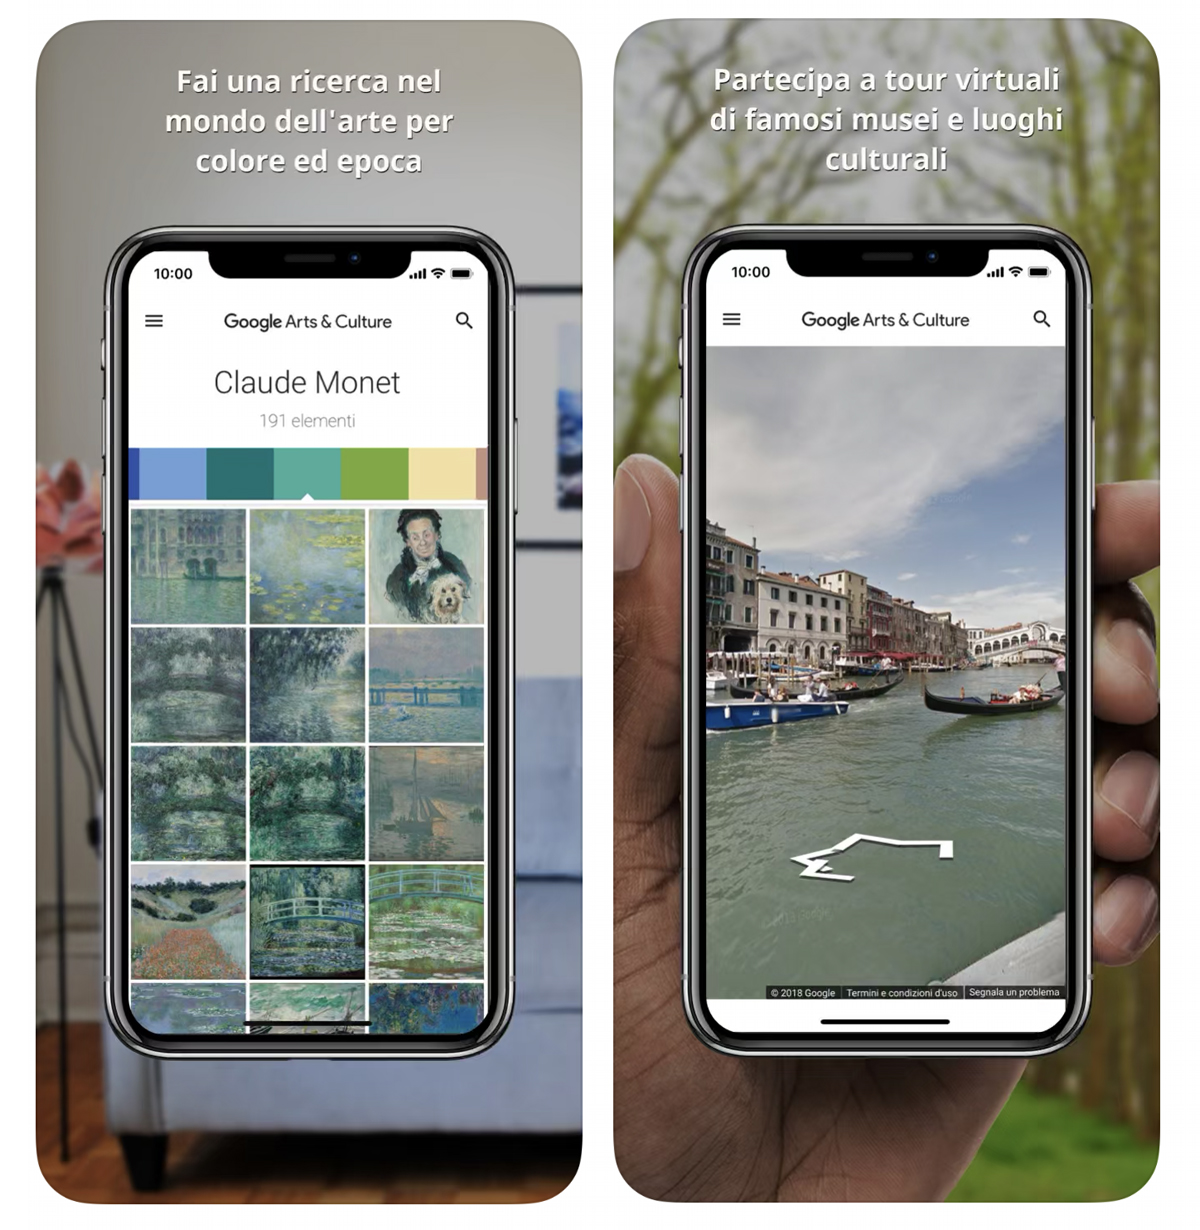 Ricerca Per Immagini Mobile around the world with virtual tours to the most famous